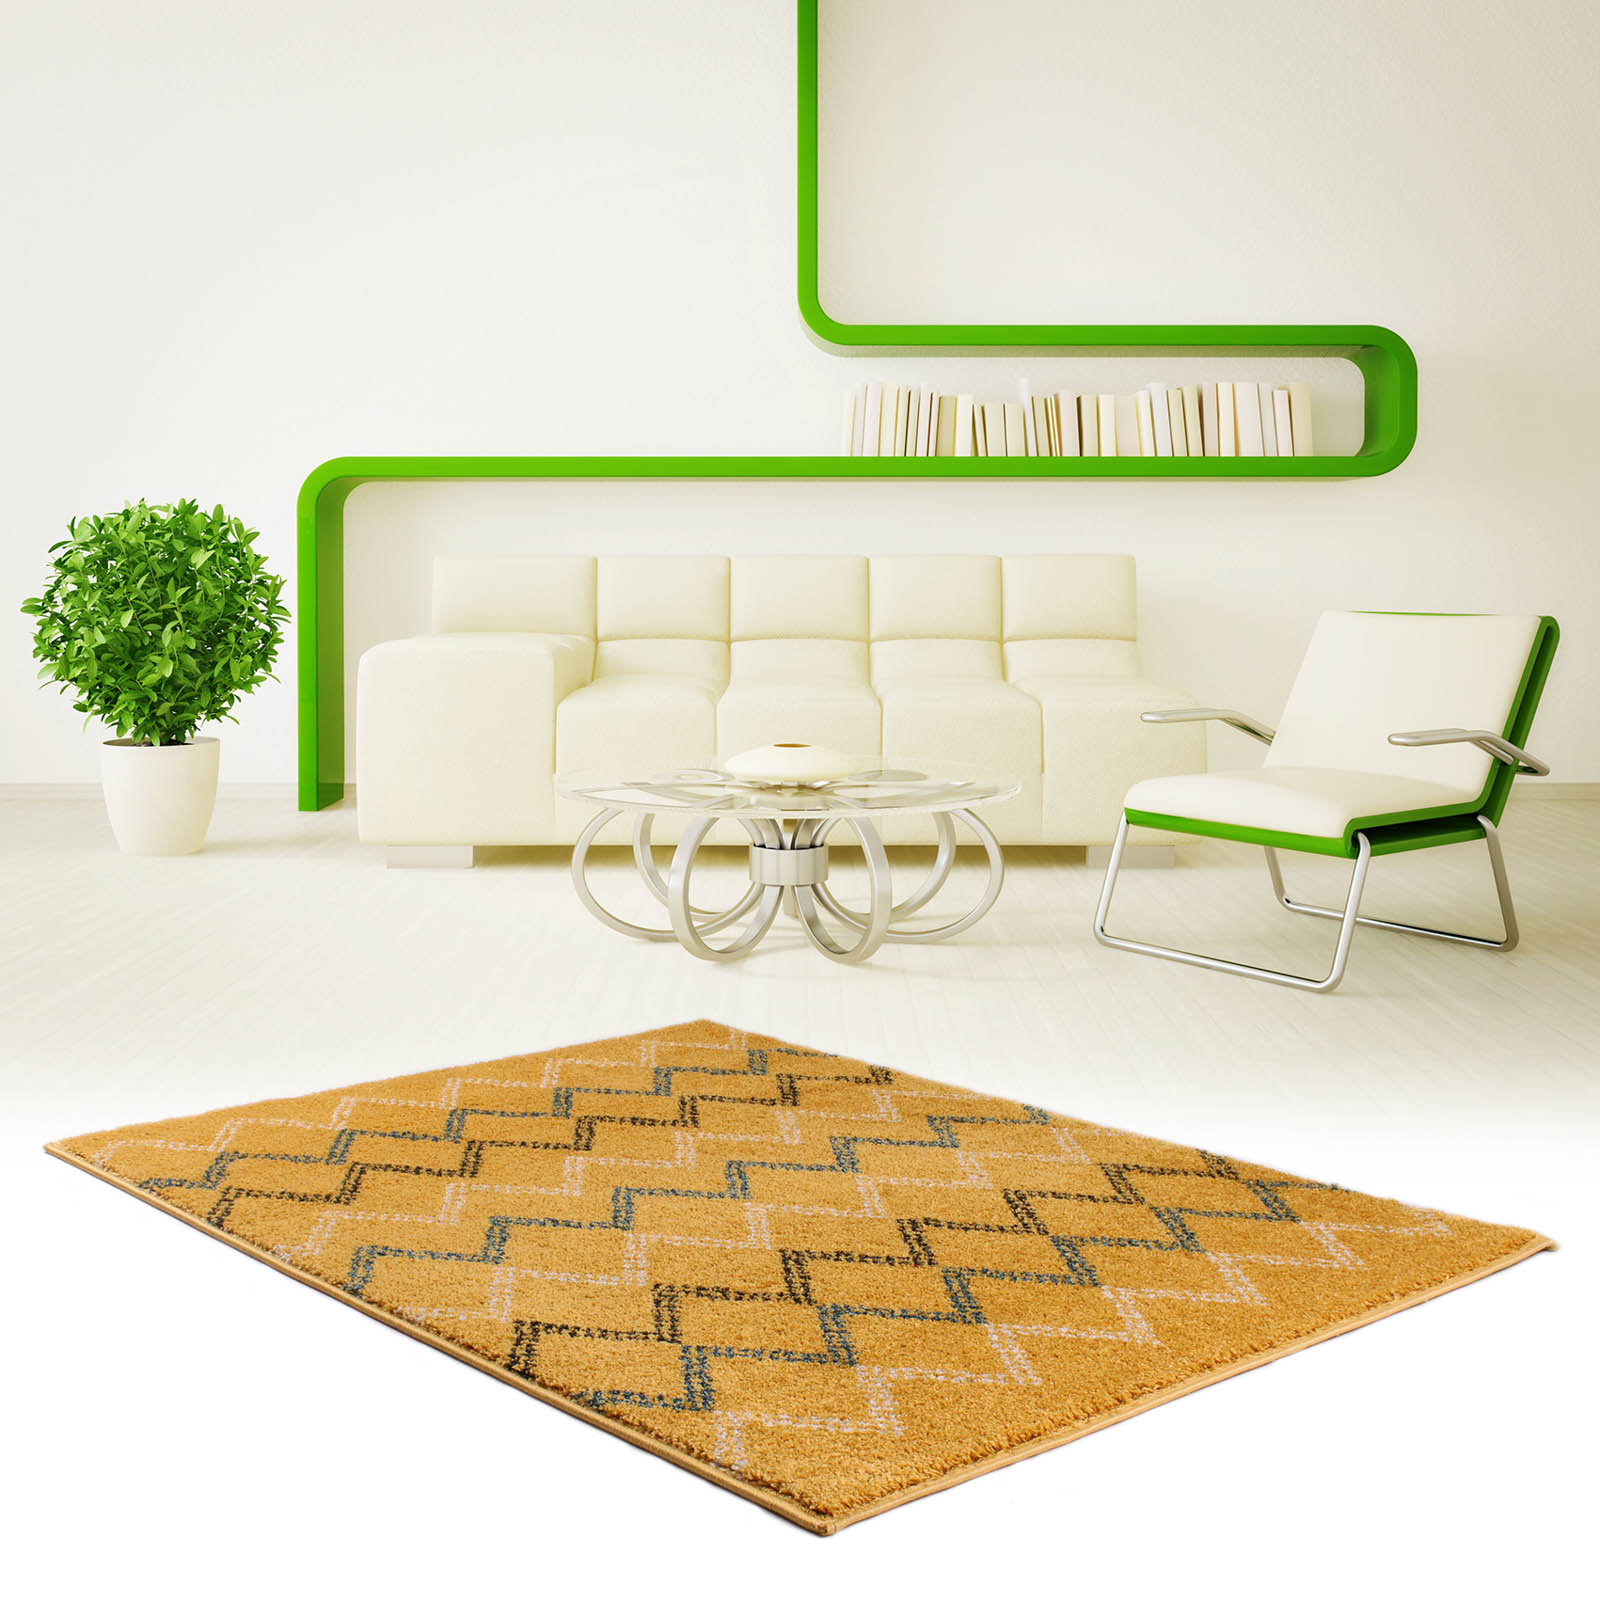 Marrakesh Rugs 2651 in Yellow and Black